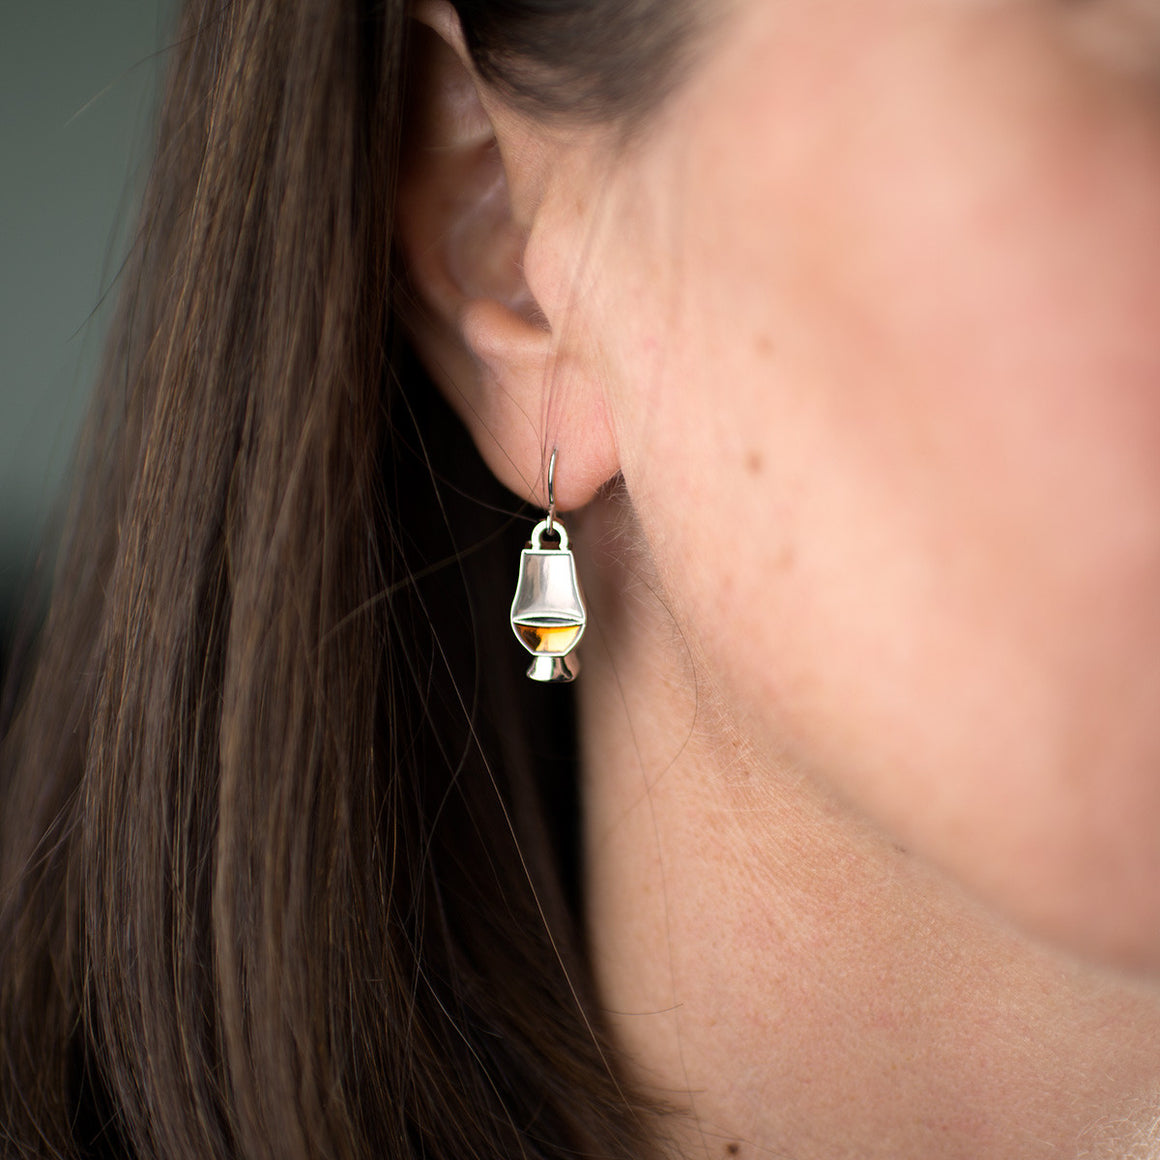 Whisky Glass Earrings by Glencairn Glass